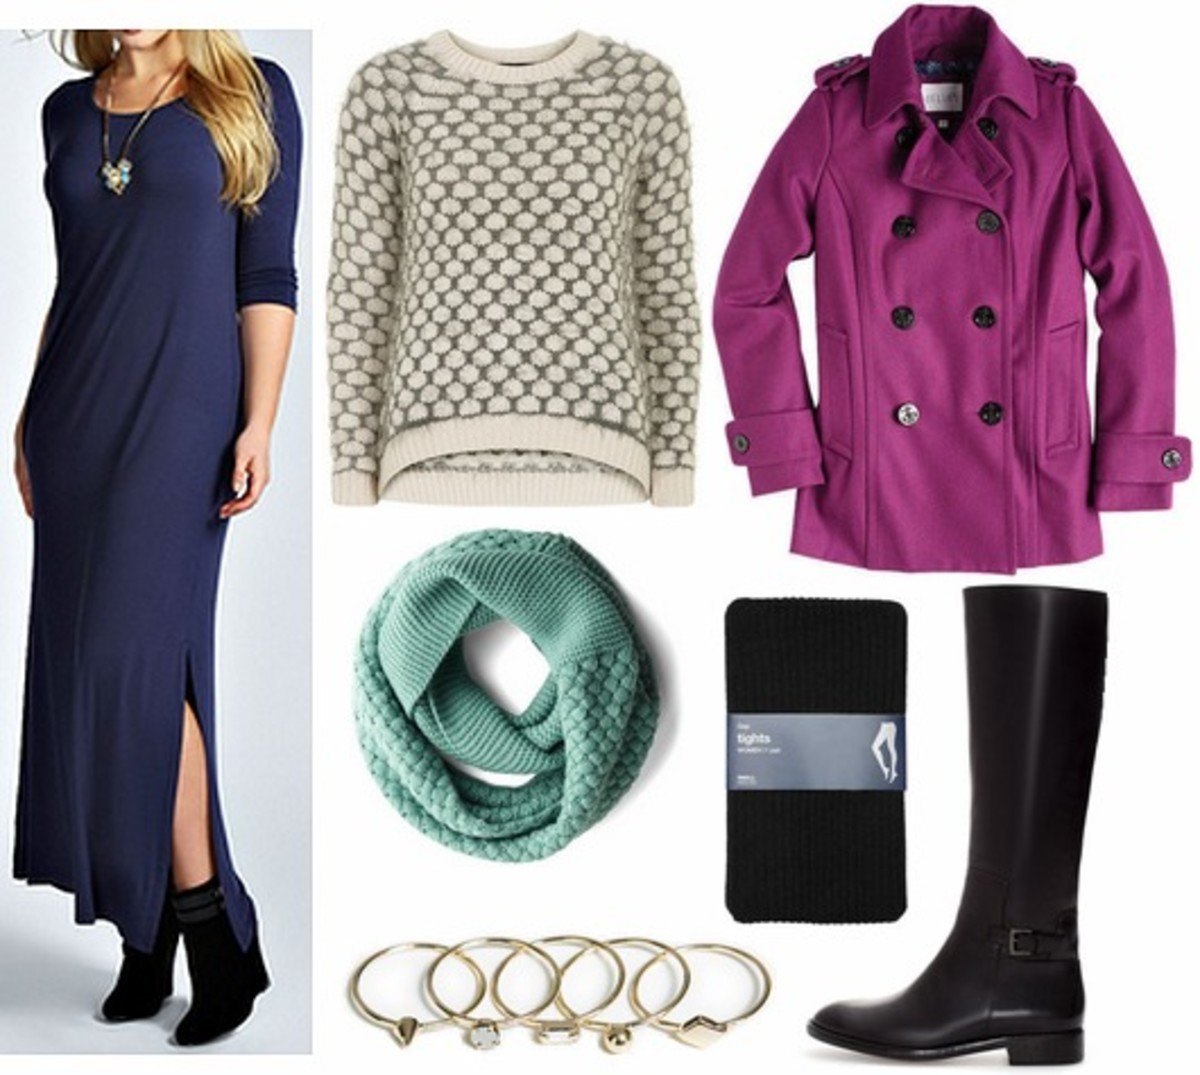 blue-navy-dress-maxi-tshirt-black-tights-black-shoe-boots-bracelet-white-sweater-purple-royal-jacket-coat-peacoat-fall-winter-weekend.jpg